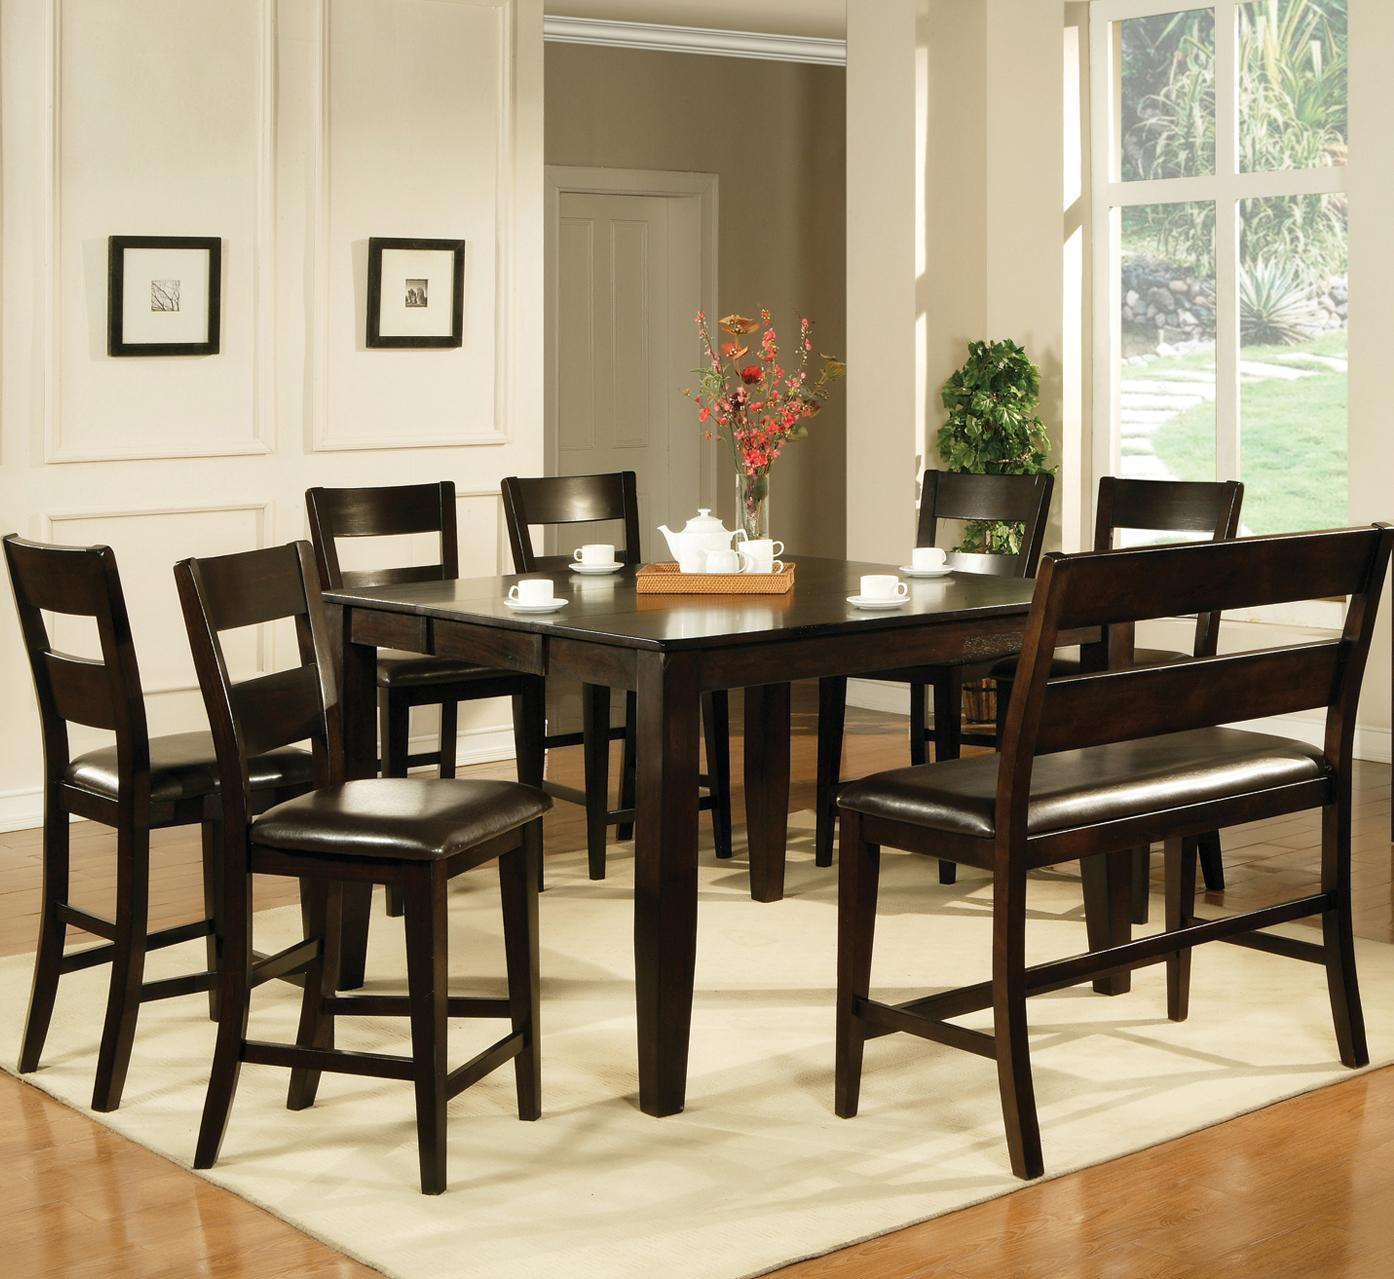 steve silver victoria 8 piece counter height dining set with bench olinde 39 s furniture table. Black Bedroom Furniture Sets. Home Design Ideas